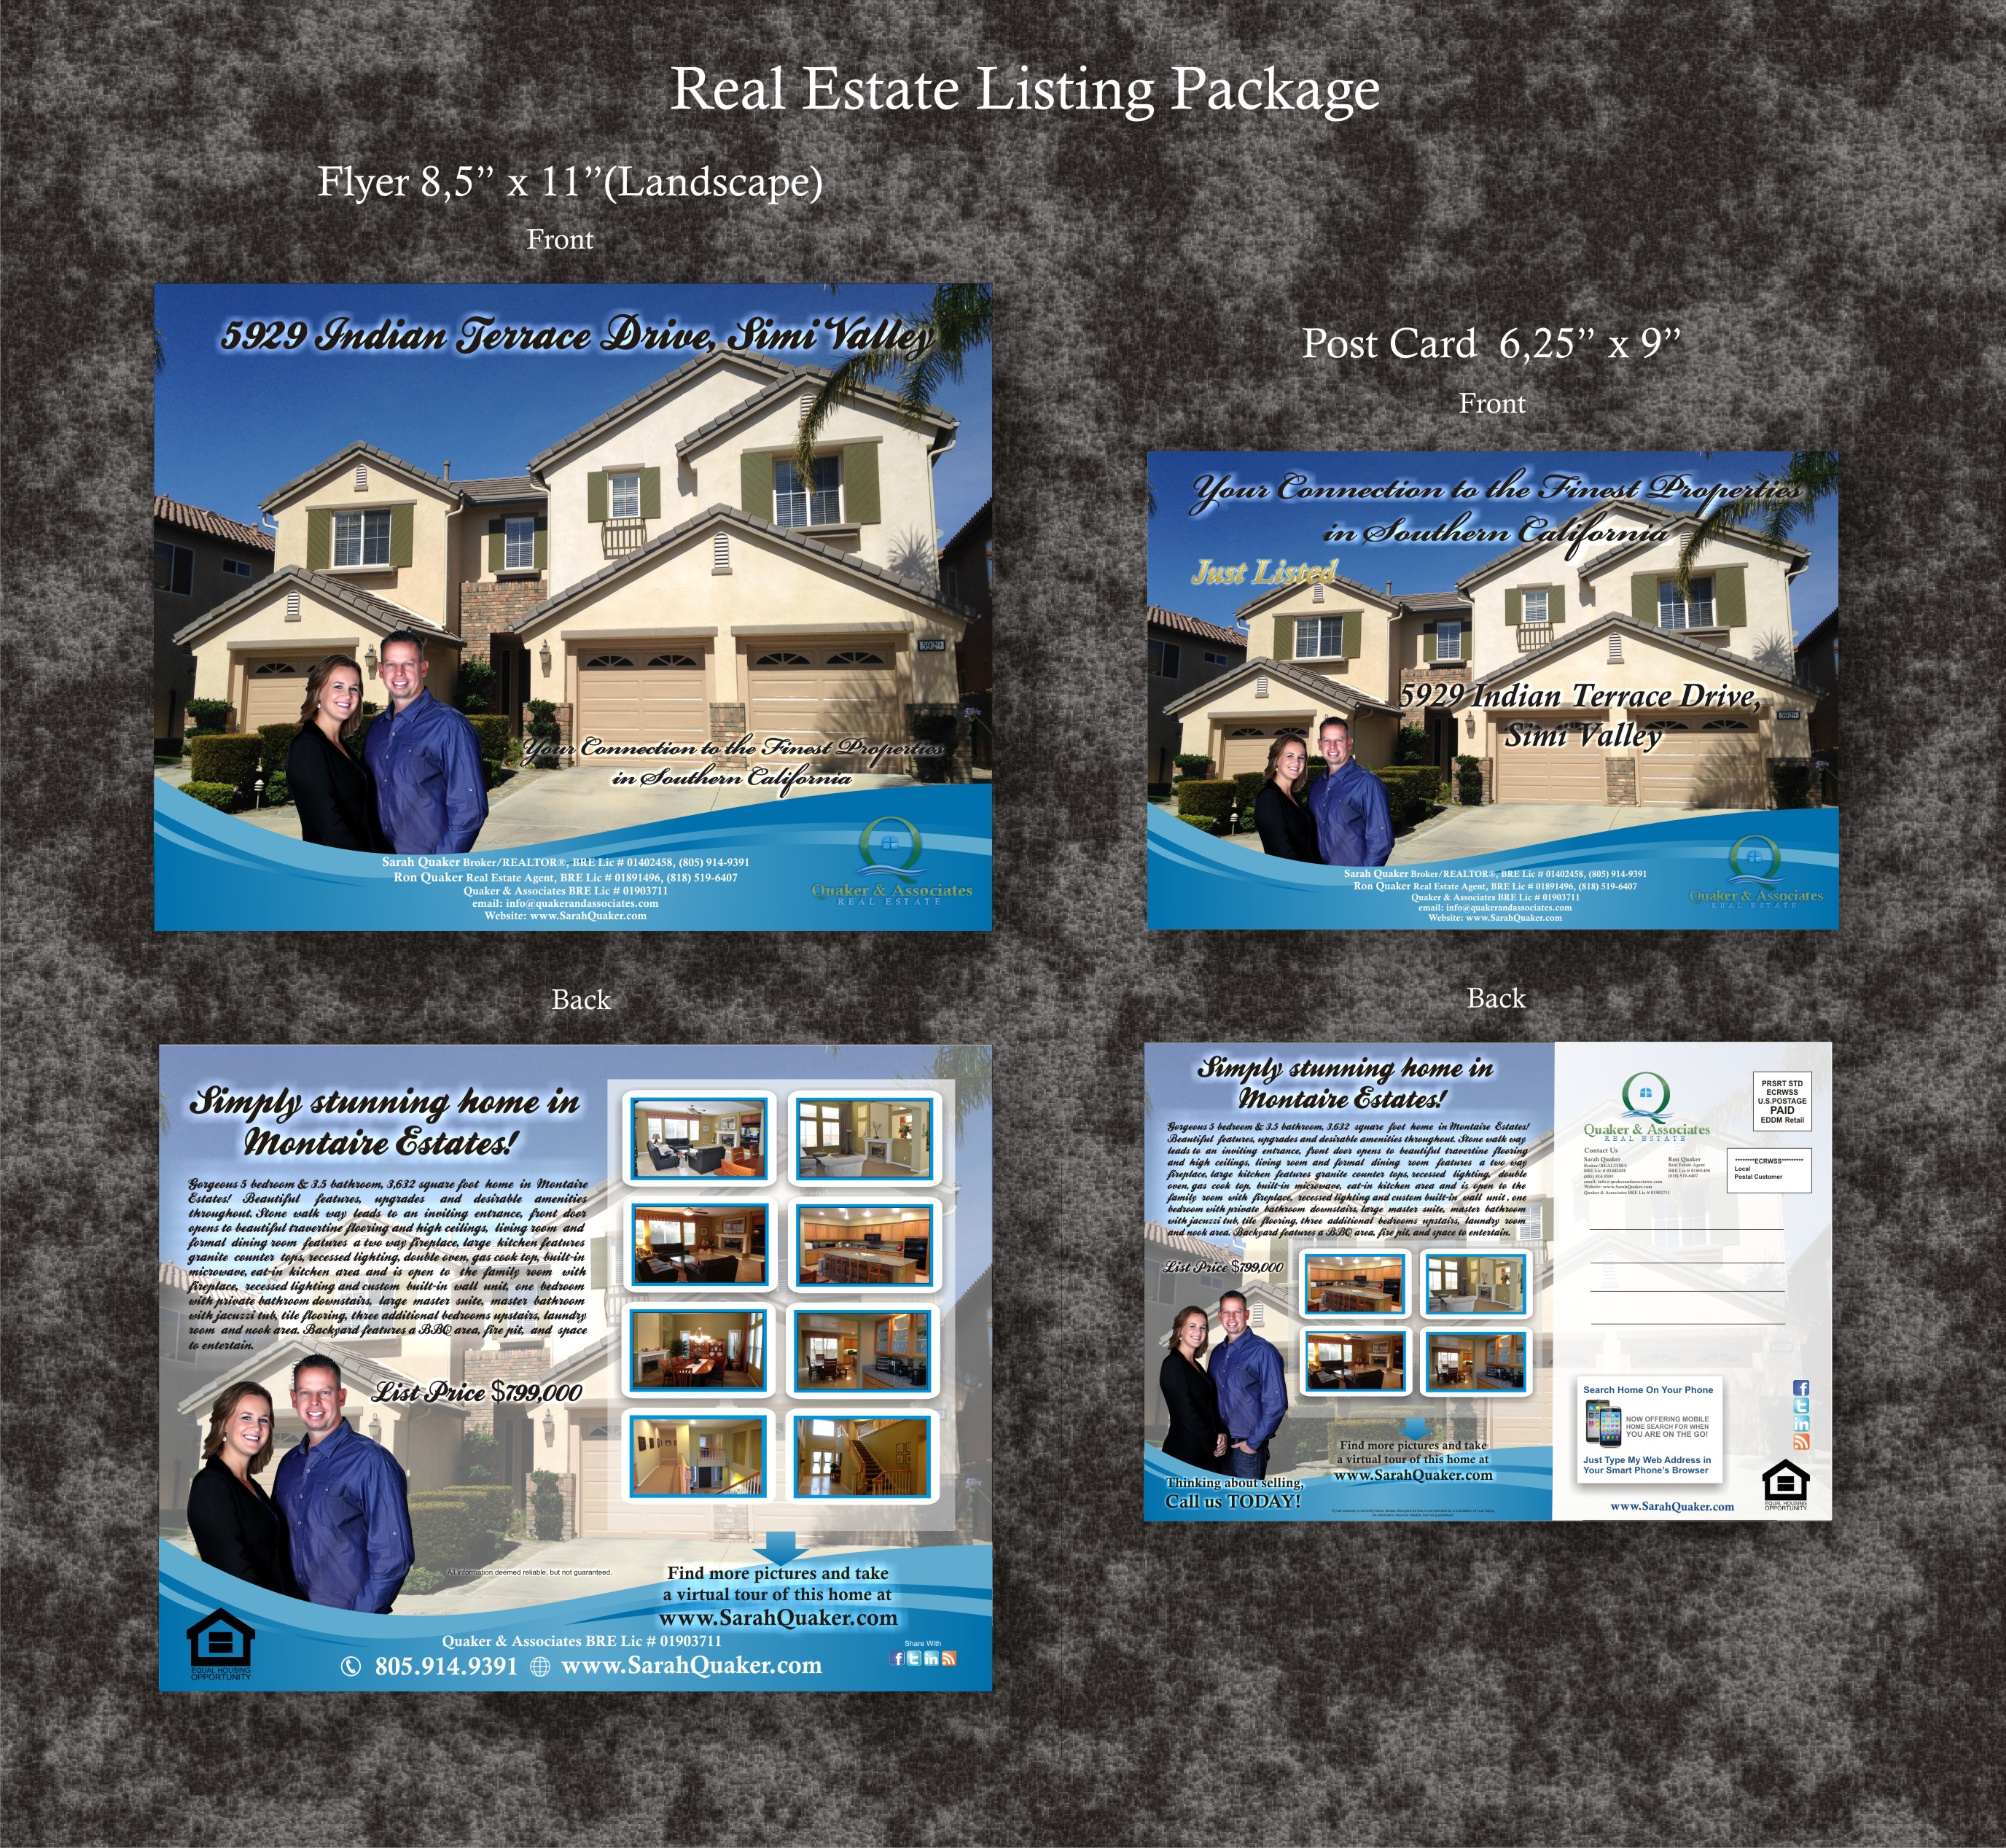 RE Listing package - Real Estate